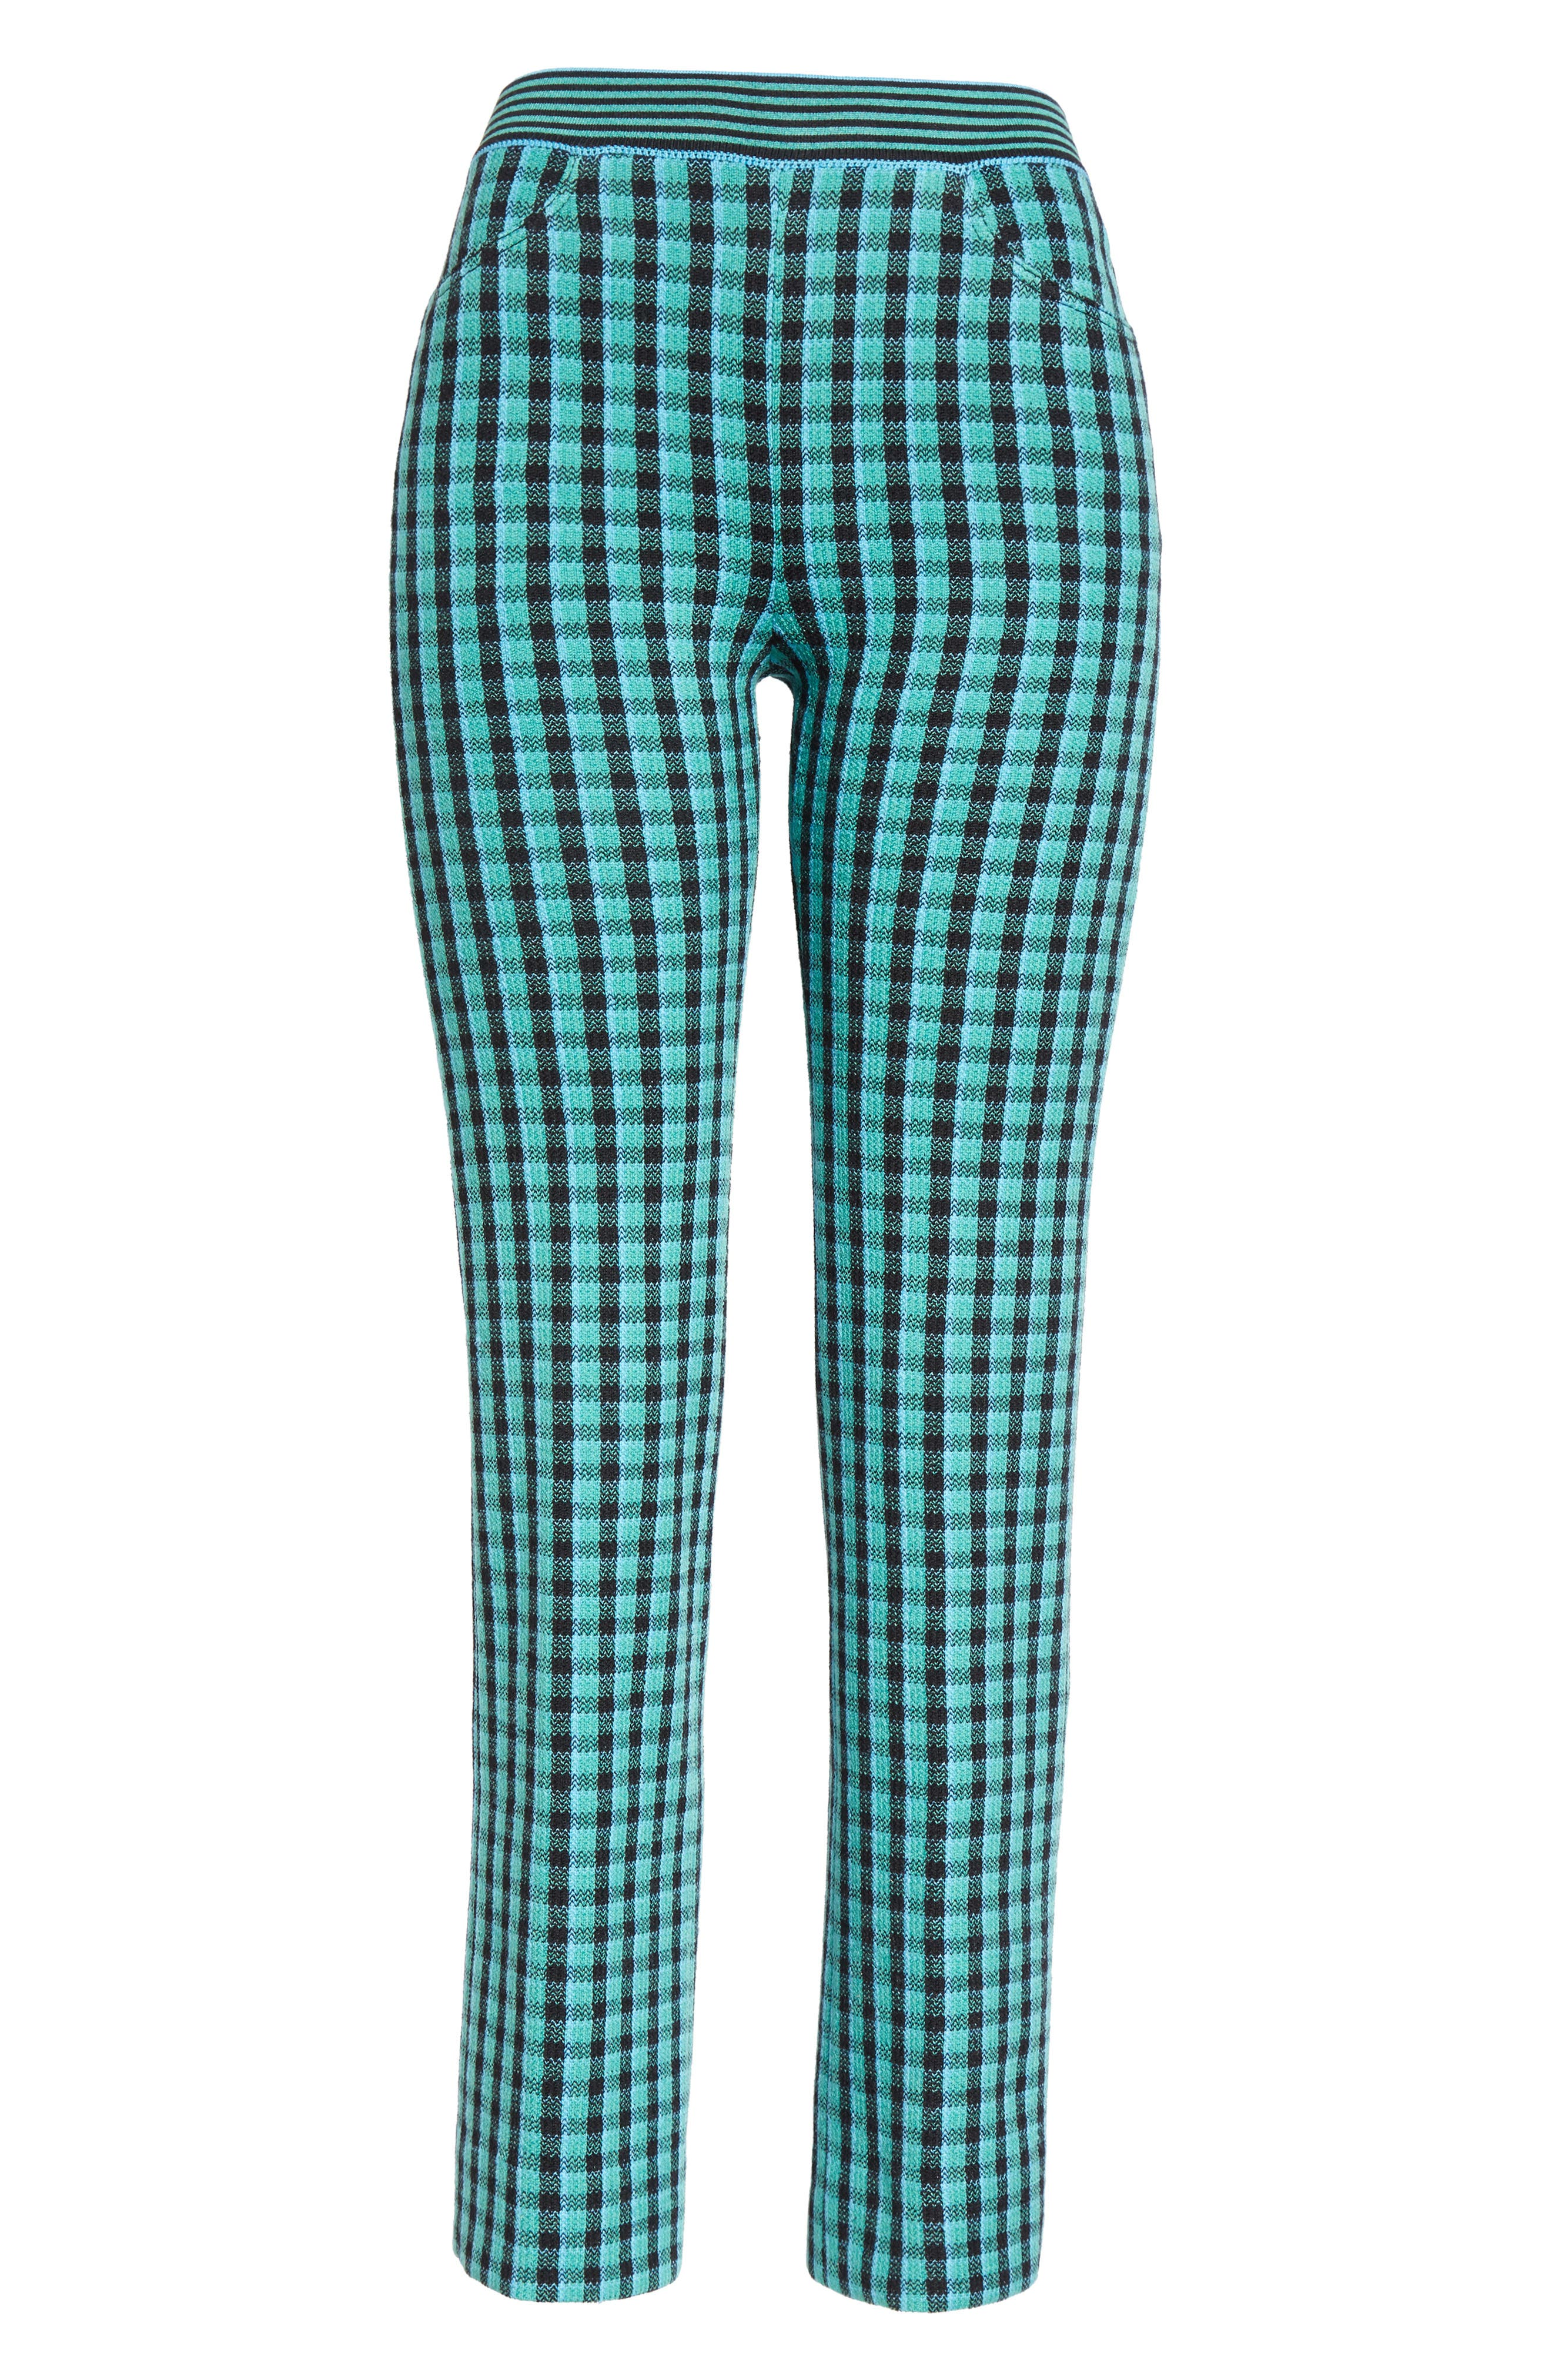 Plaid Stretch Wool Knit Pants,                             Alternate thumbnail 4, color,                             Green/ Blue